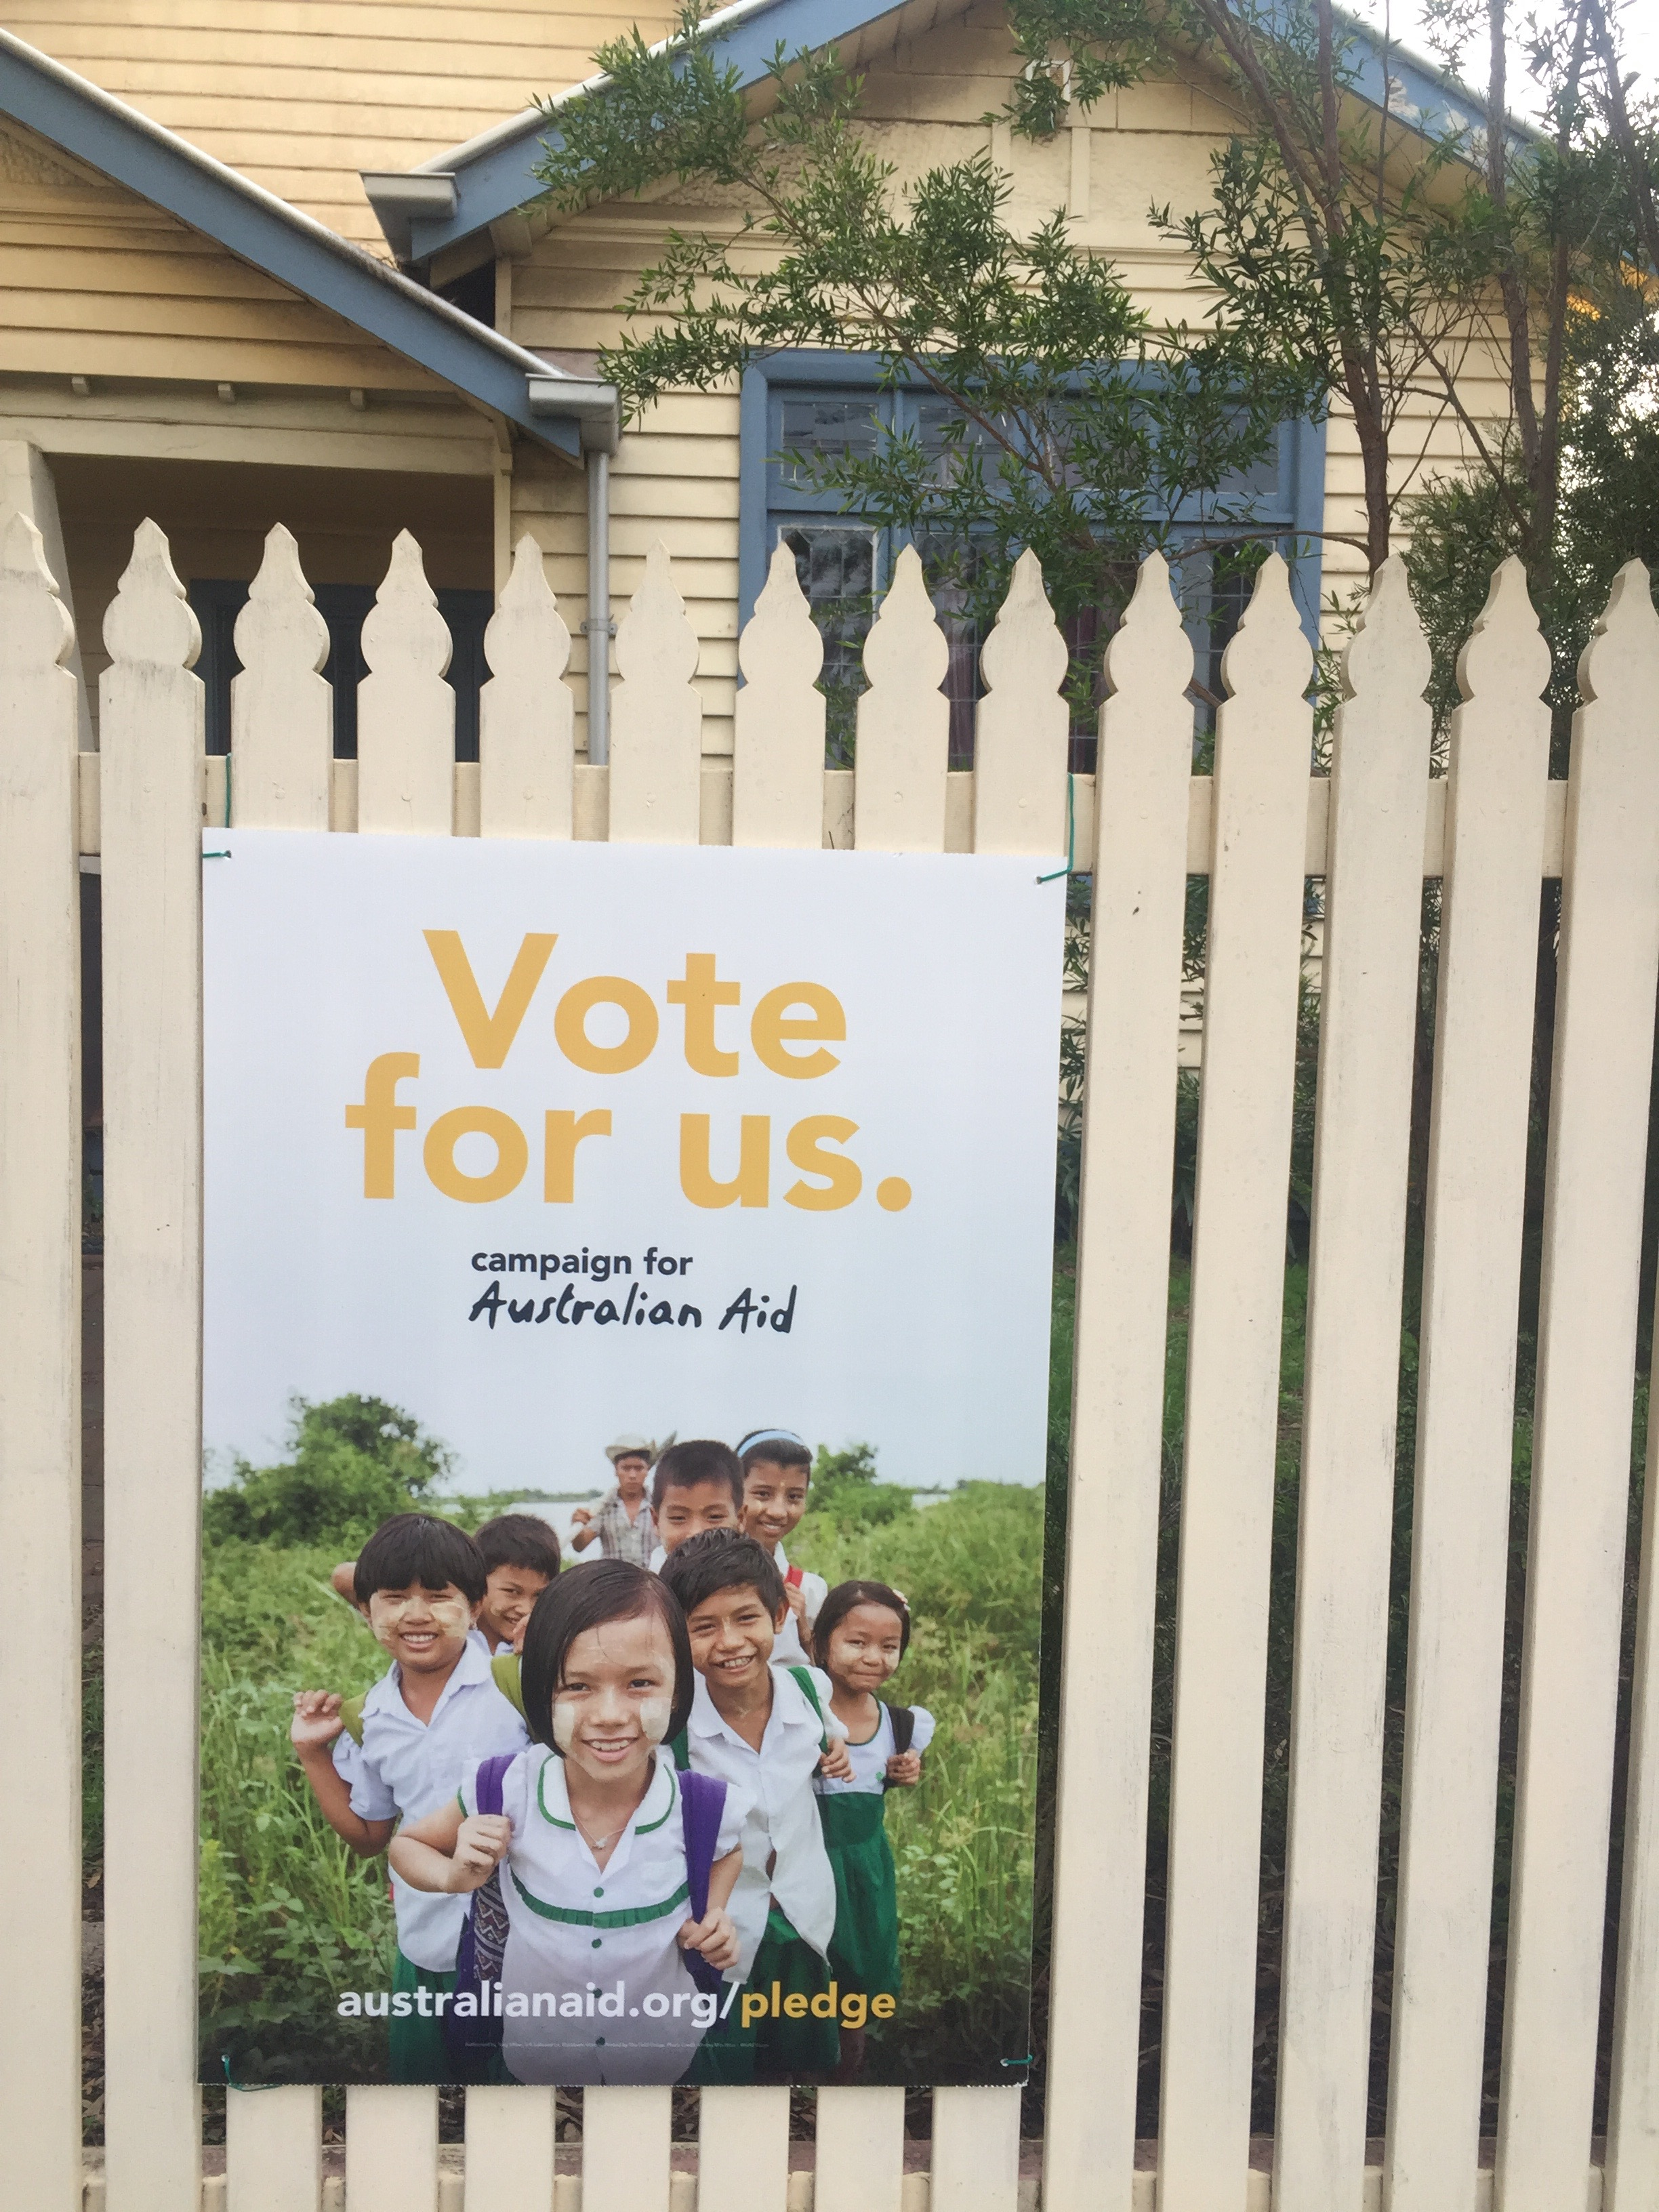 Vote For Us—the poster on my picket fence